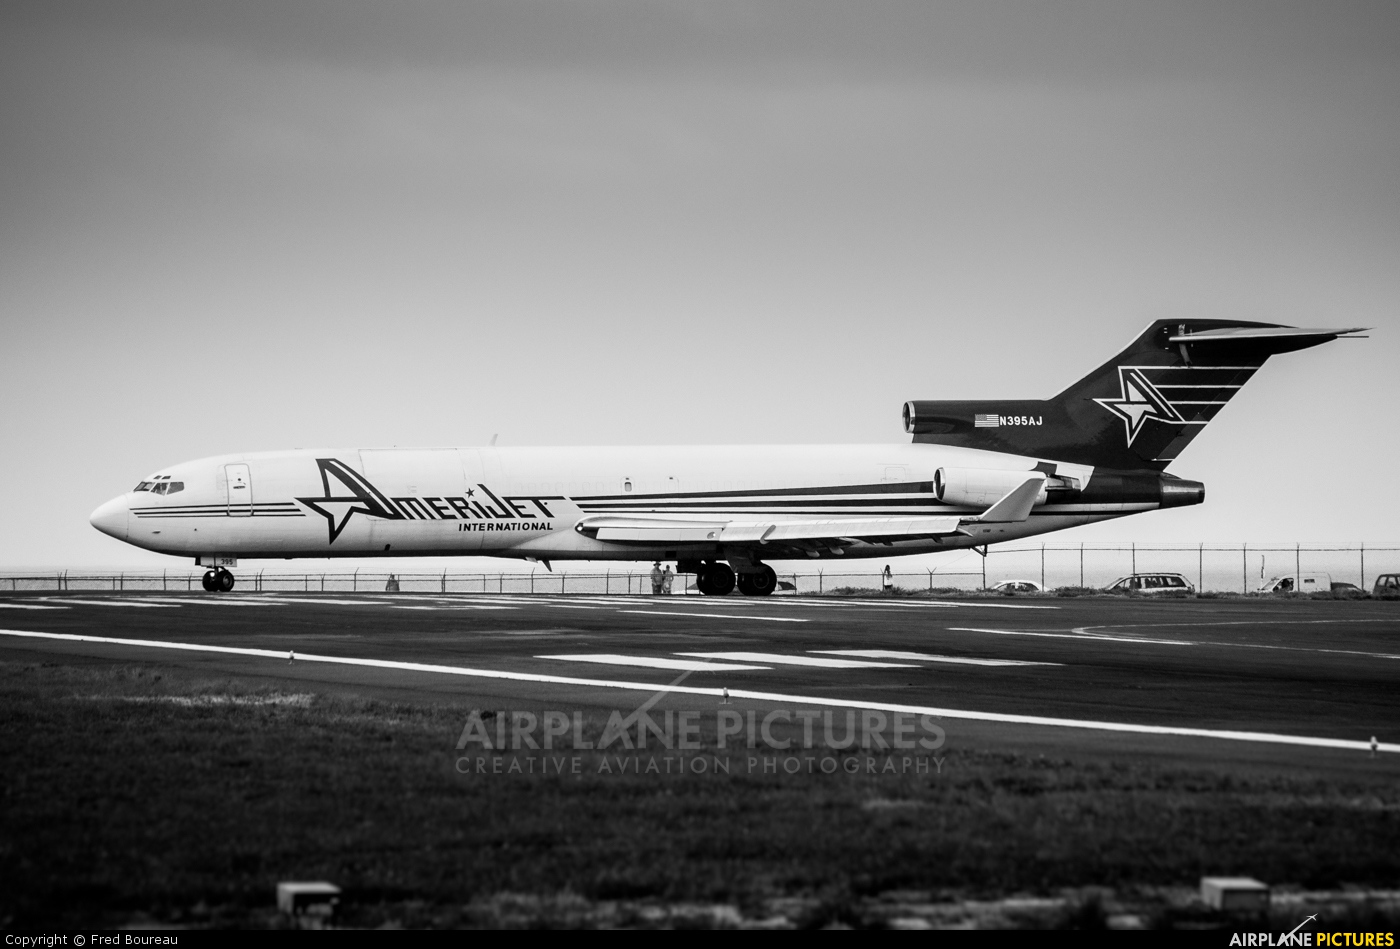 Amerijet International N395AJ aircraft at Sint Maarten - Princess Juliana Intl